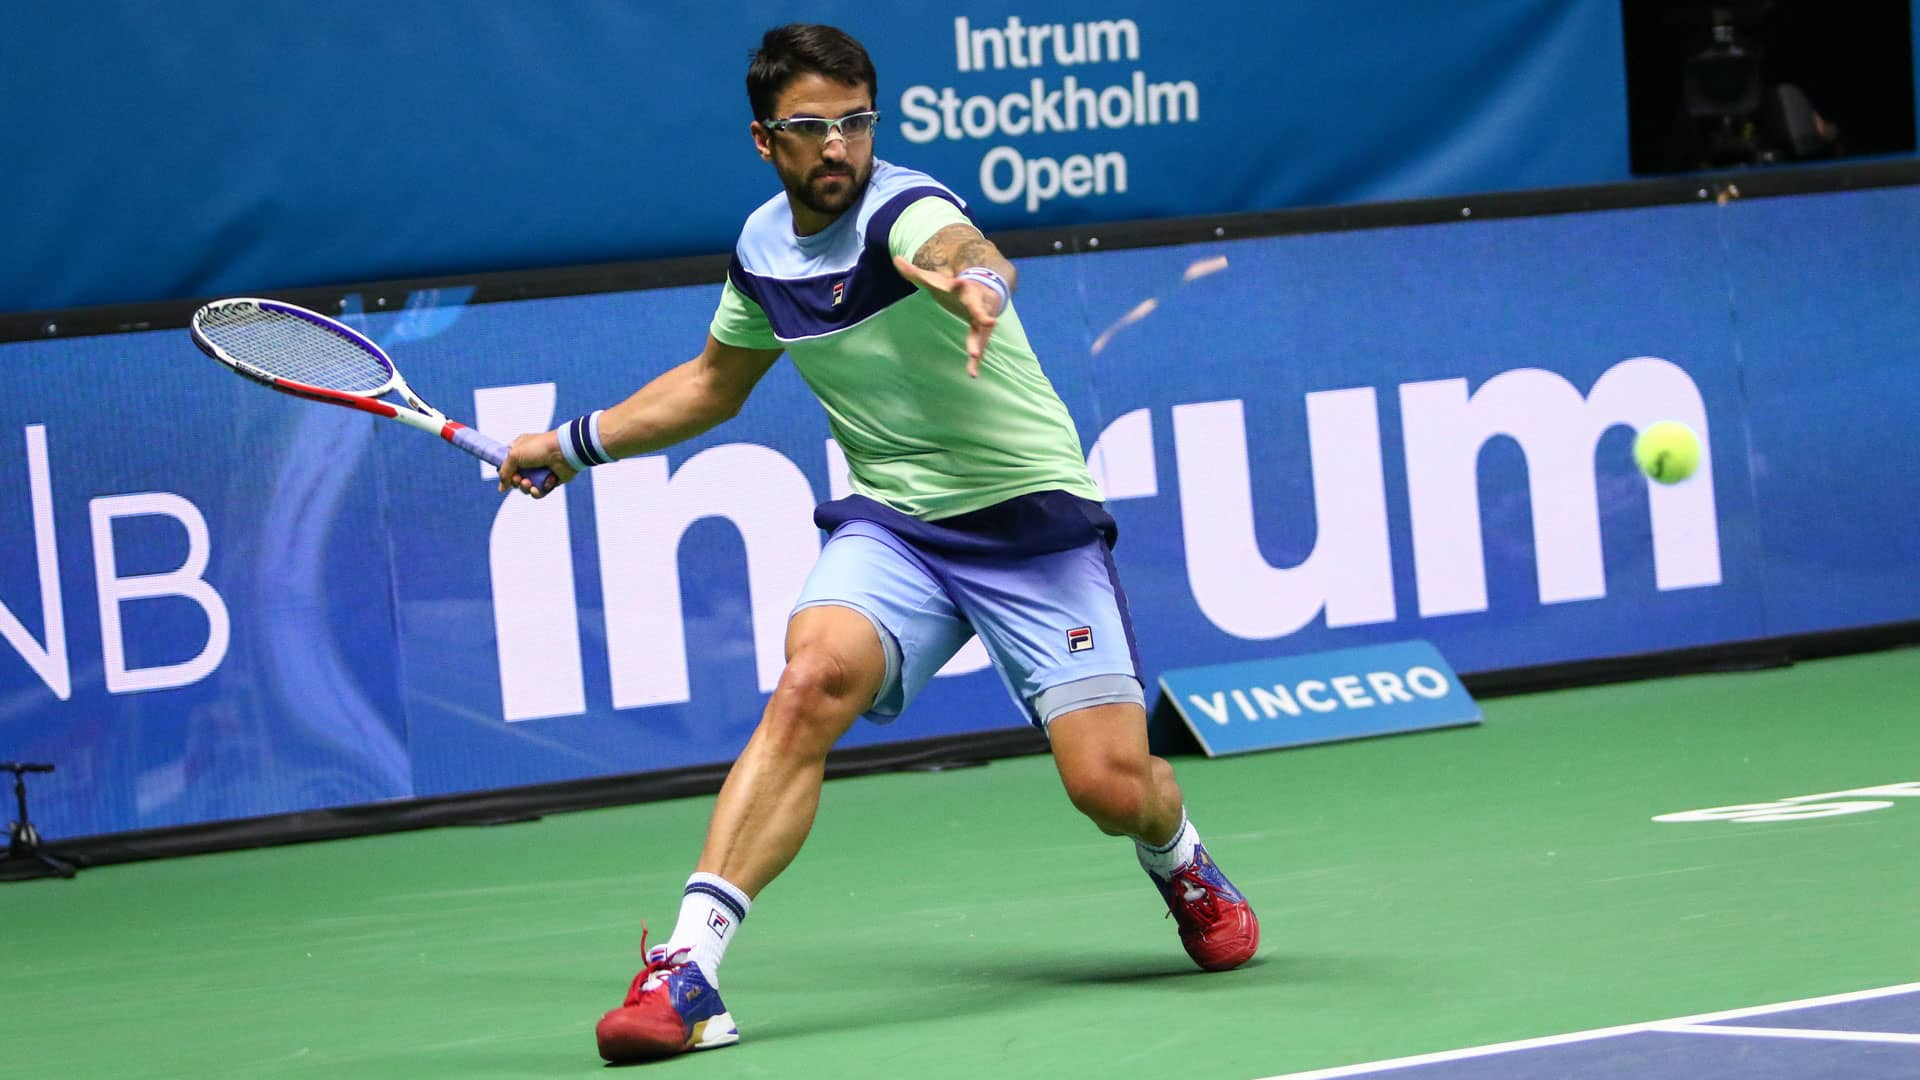 Janko Tipsarevic hits a forehand in Stockholm 2019